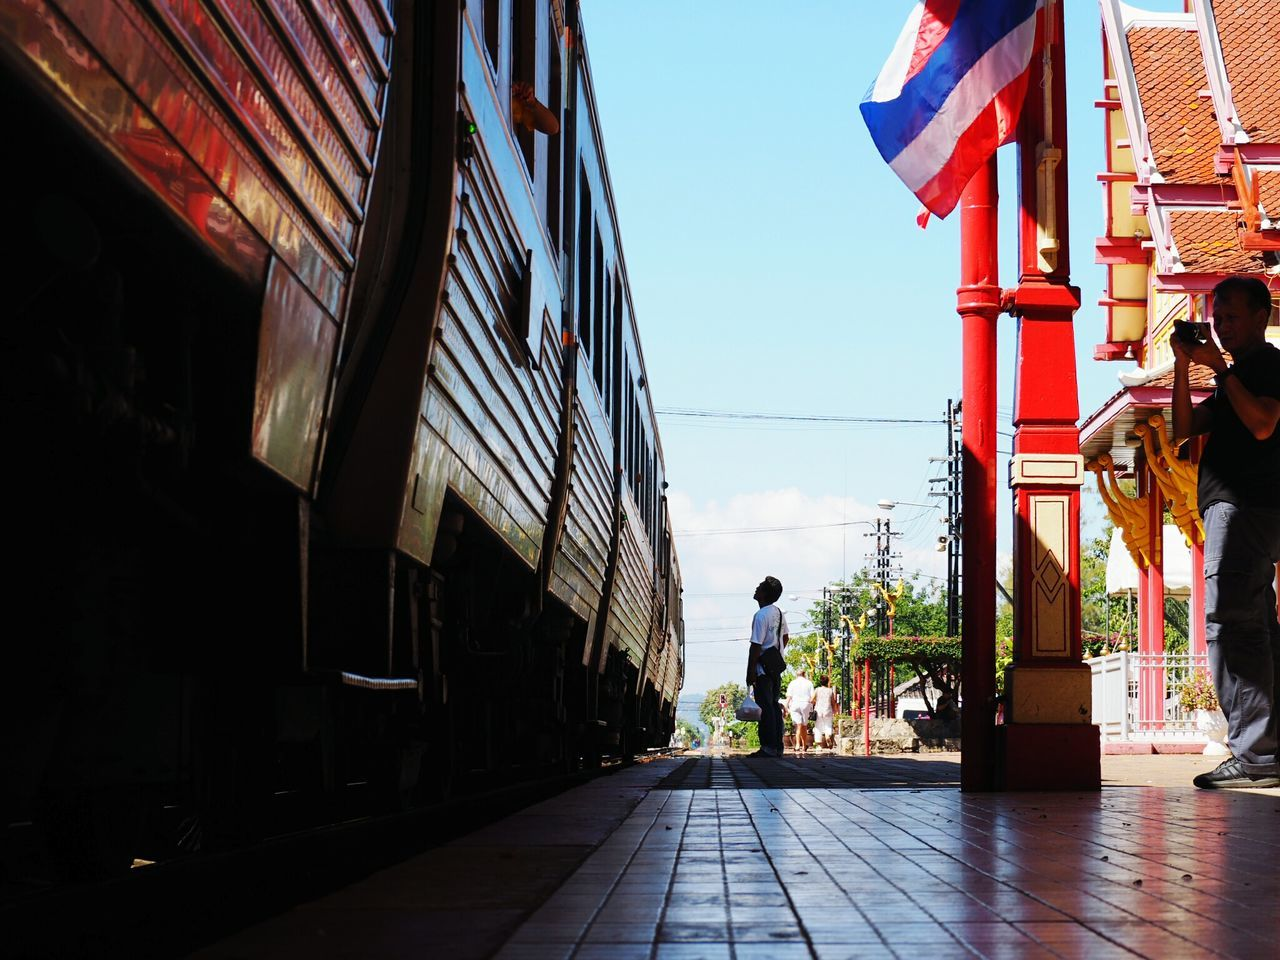 Thailand Train Station Train_of_our_world Thailand_allshots Man At Work Taking Photos Tourists Station Thailandtravel Traveling Travil Travel Photography Travel In Thailand Enjoying Life Clear Sky